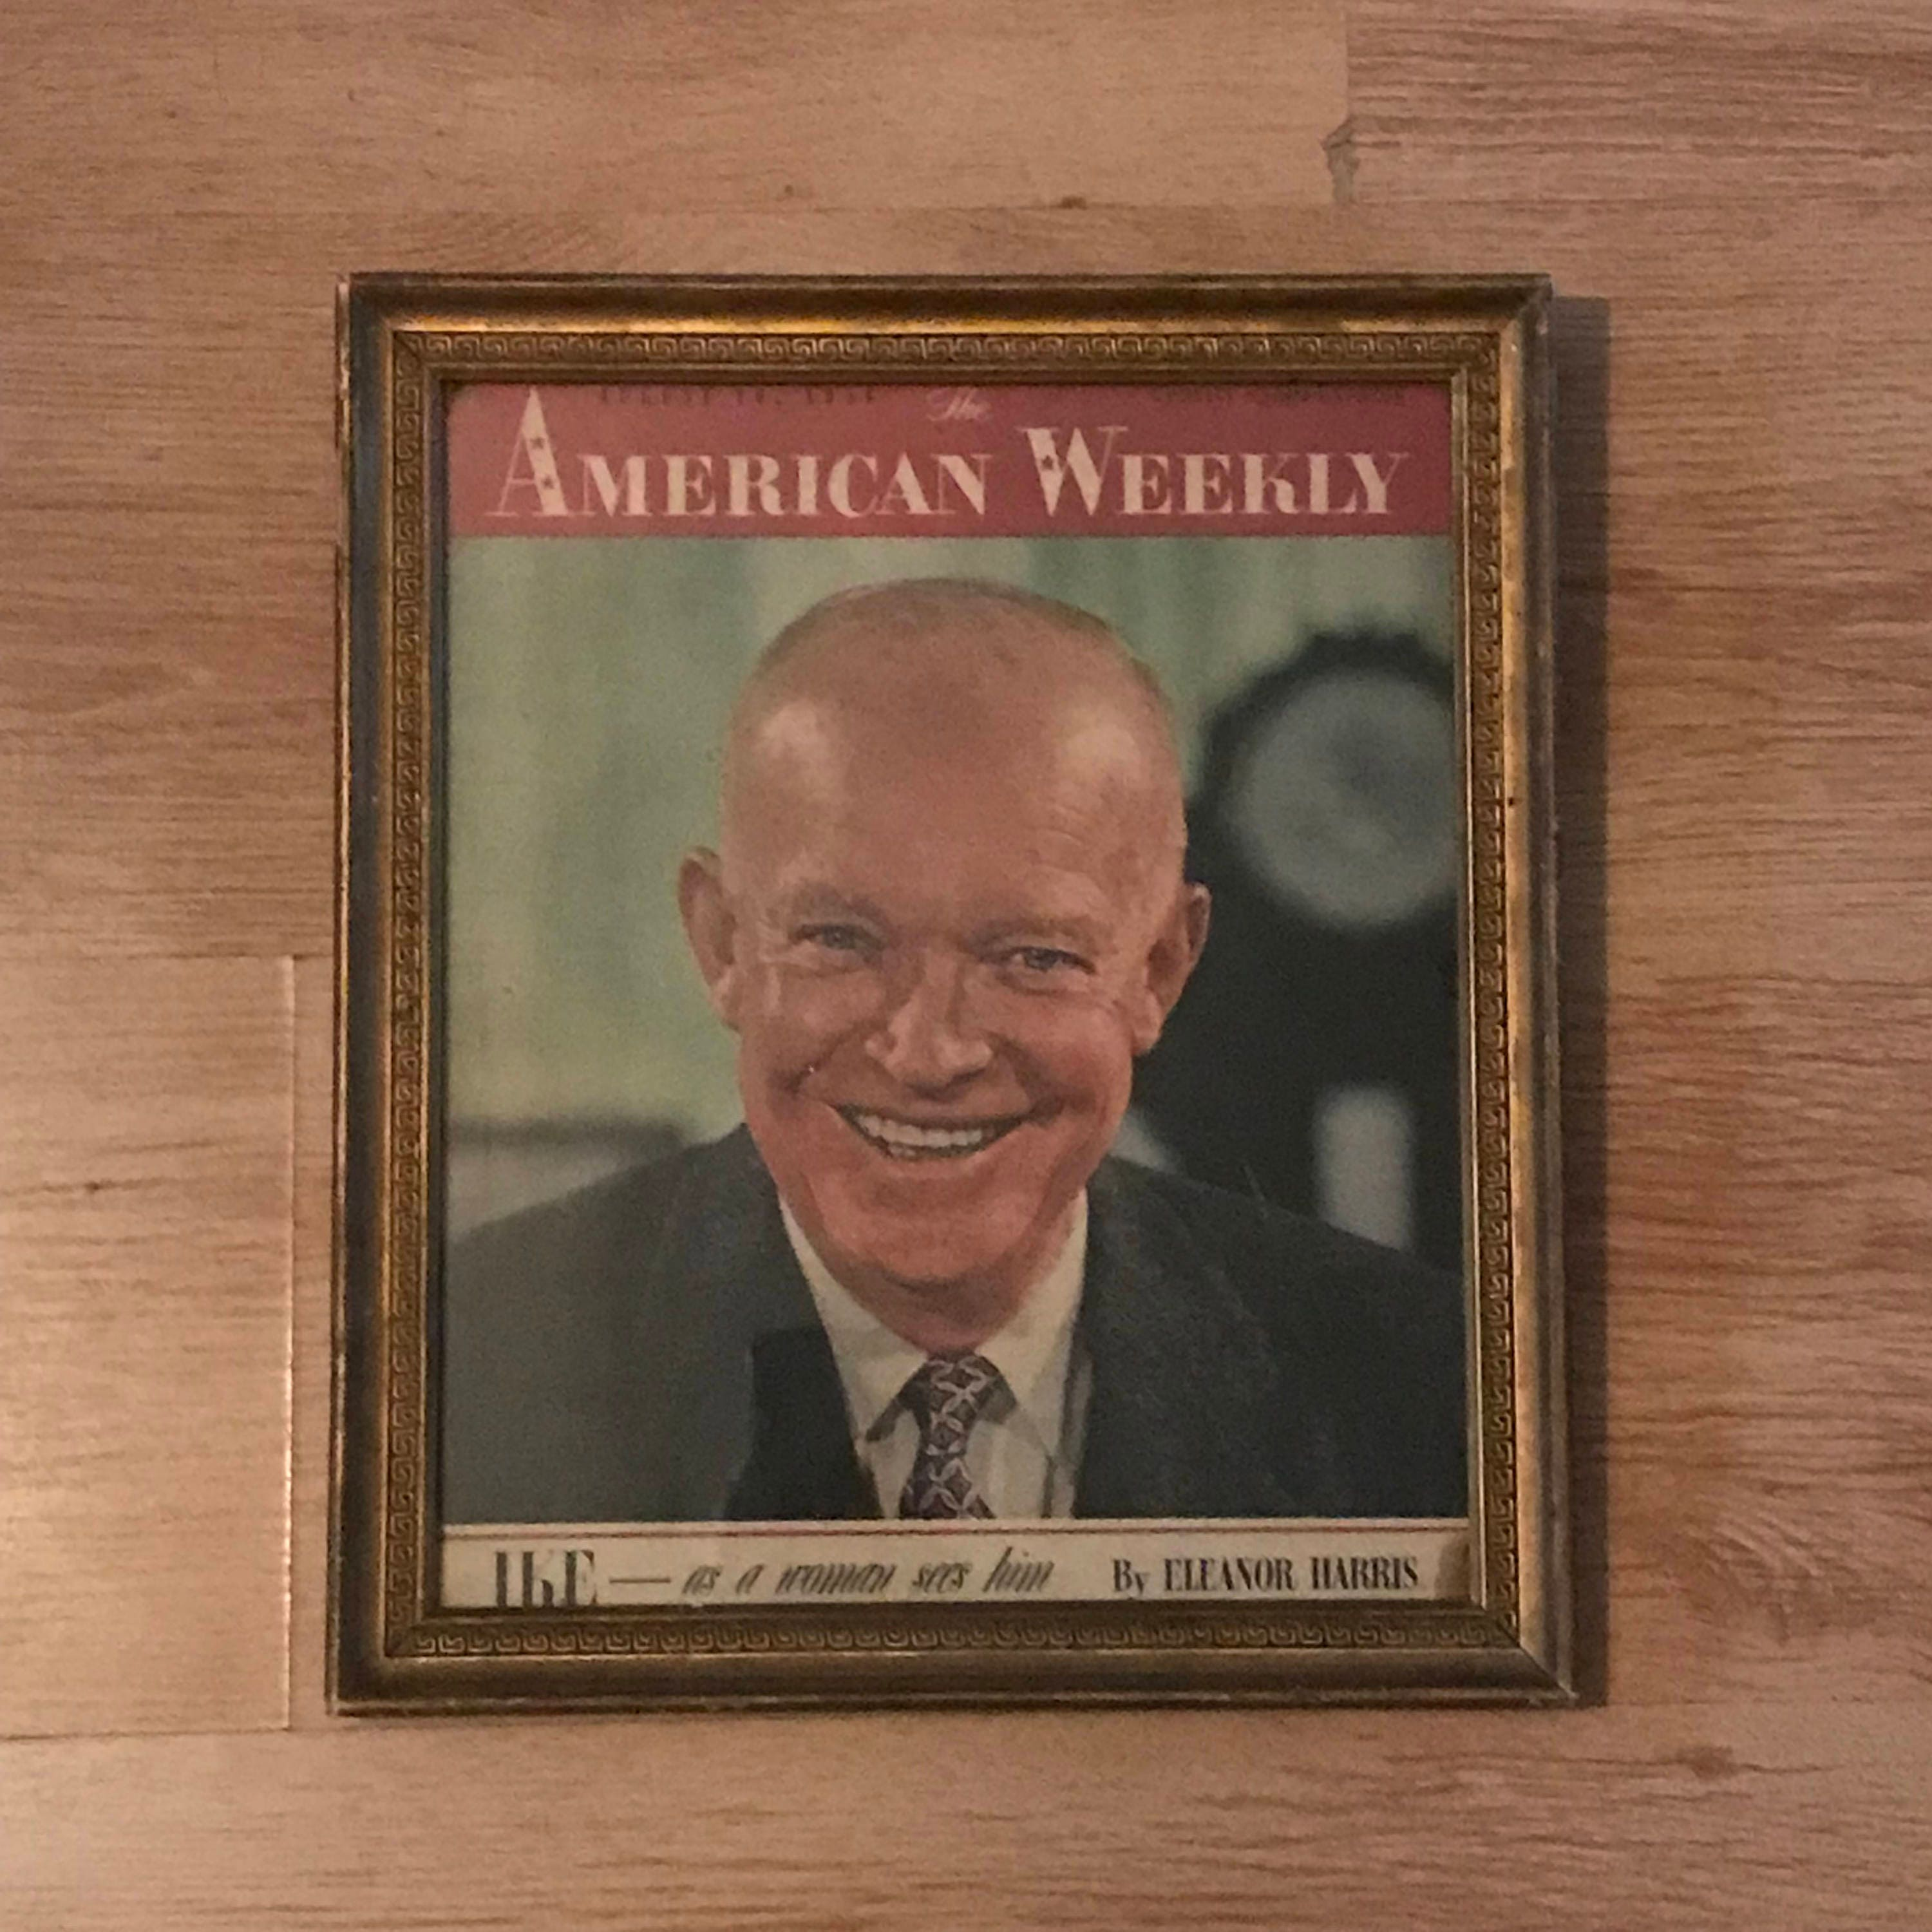 1956 dwight ike eisenhower american weekly cover in vintage frame 1956 dwight ike eisenhower american weekly cover in vintage frame august 19 1956 political memorabilia history magazine print jeuxipadfo Images